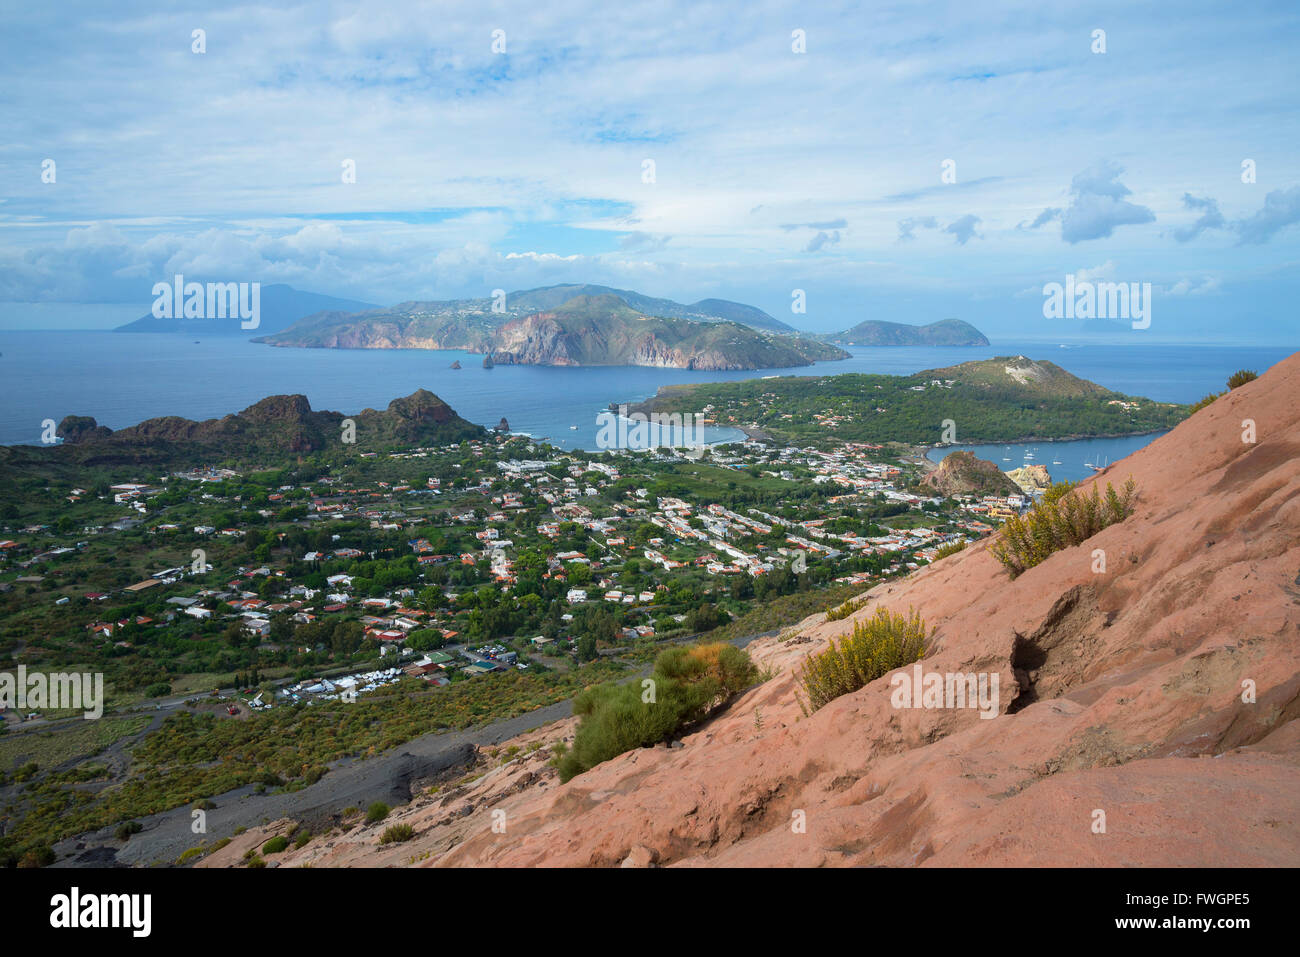 Porto di Levante and Vulcanello view, Vulcano Island, Aeolian Islands, UNESCO, north of Sicily, Italy Stock Photo